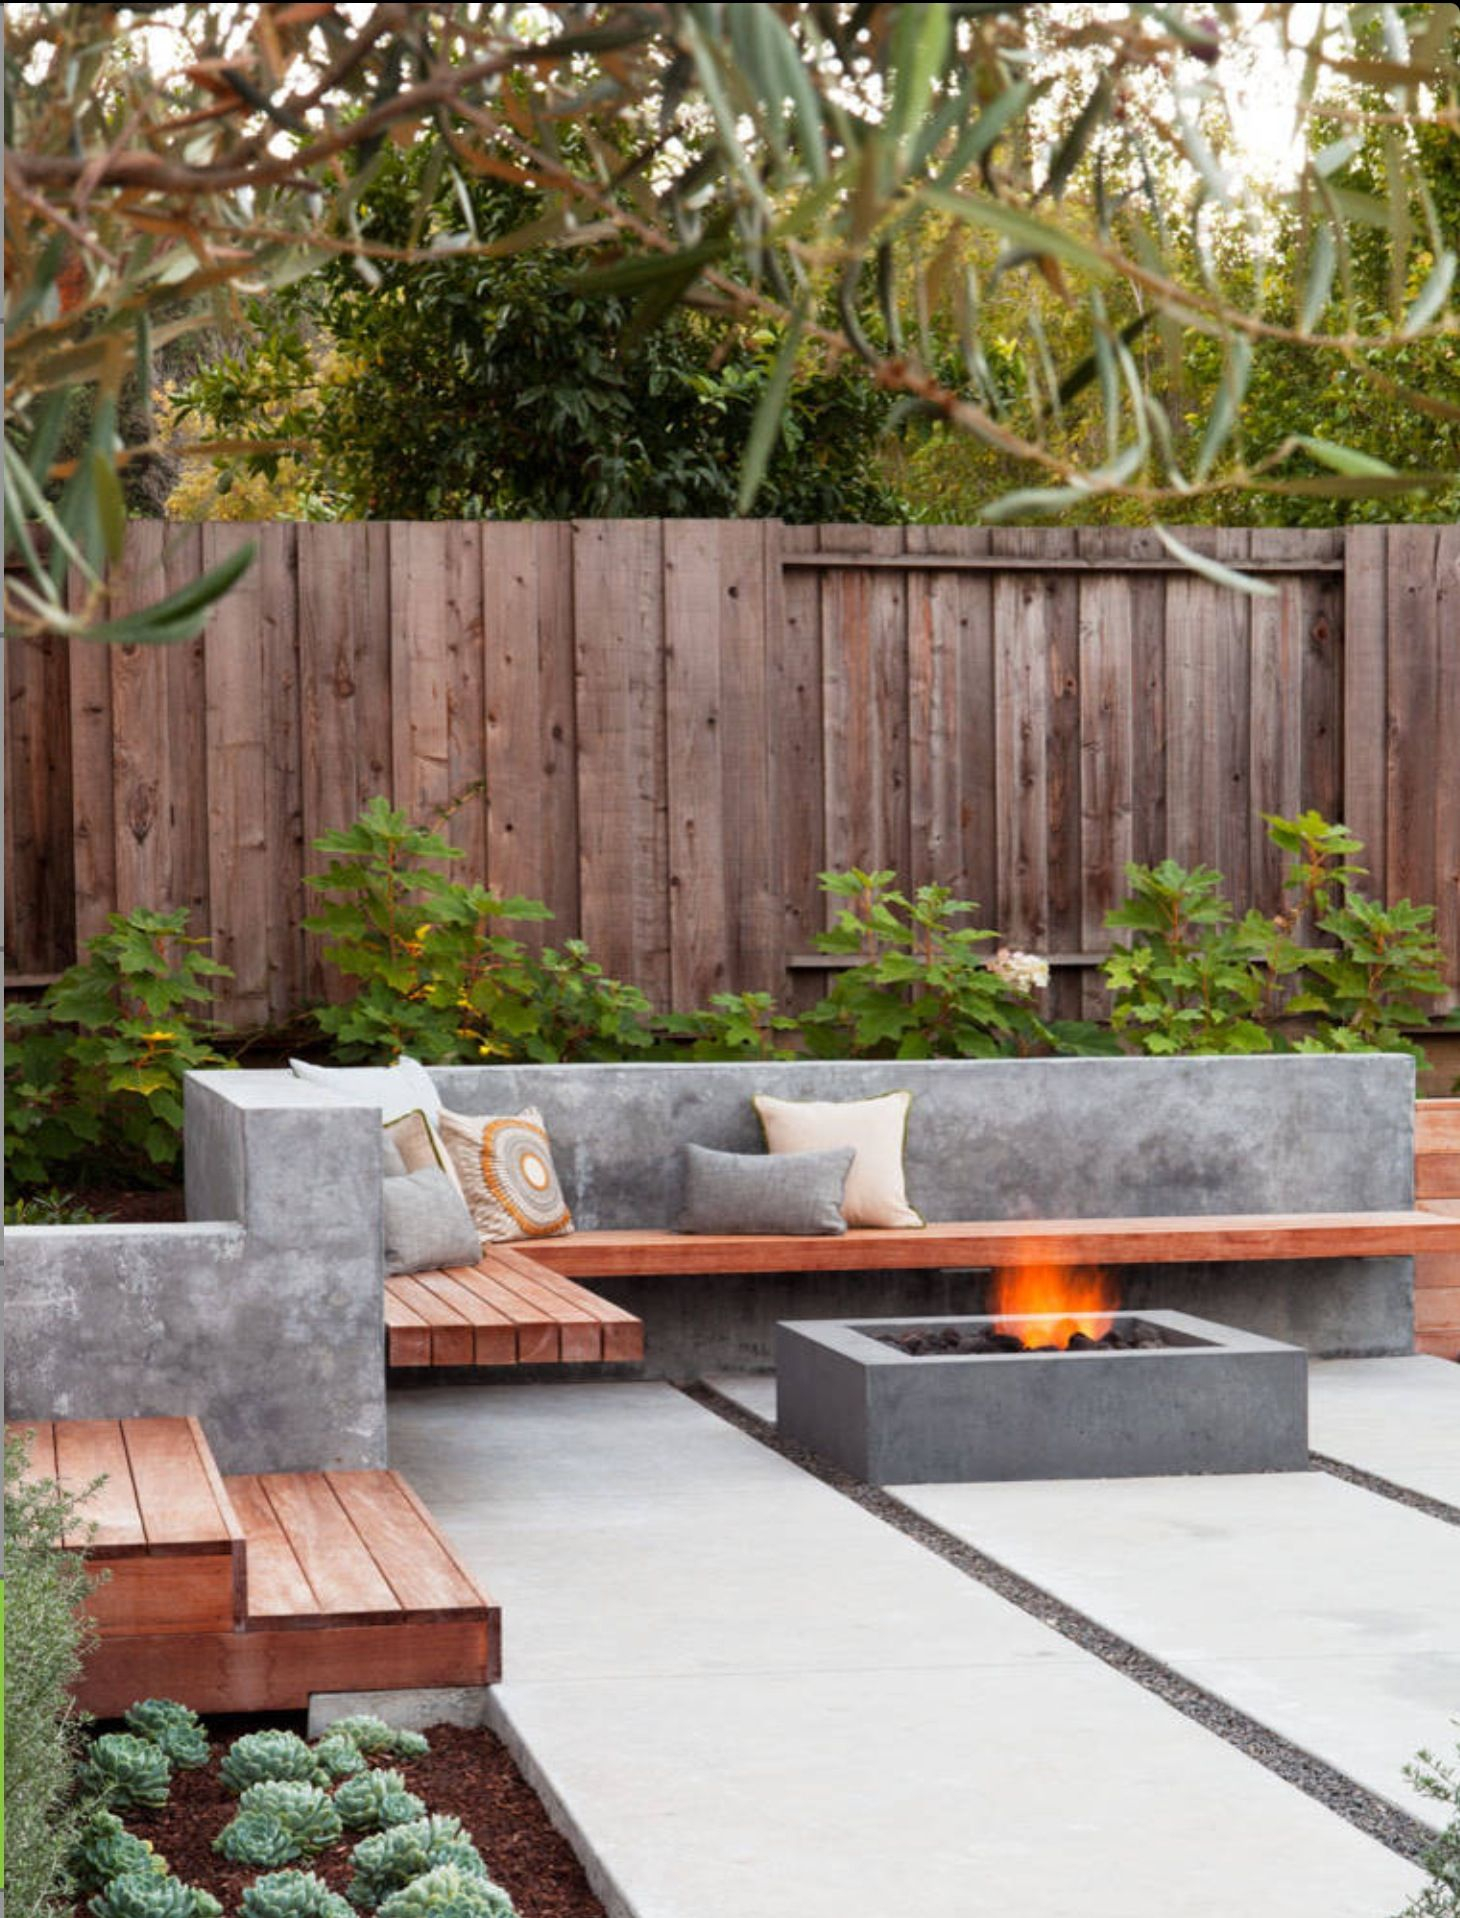 23 Small Backyard Ideas How To Make Them Look Spacious And Cozy for 11 Genius Concepts of How to Improve Concrete Backyard Landscaping